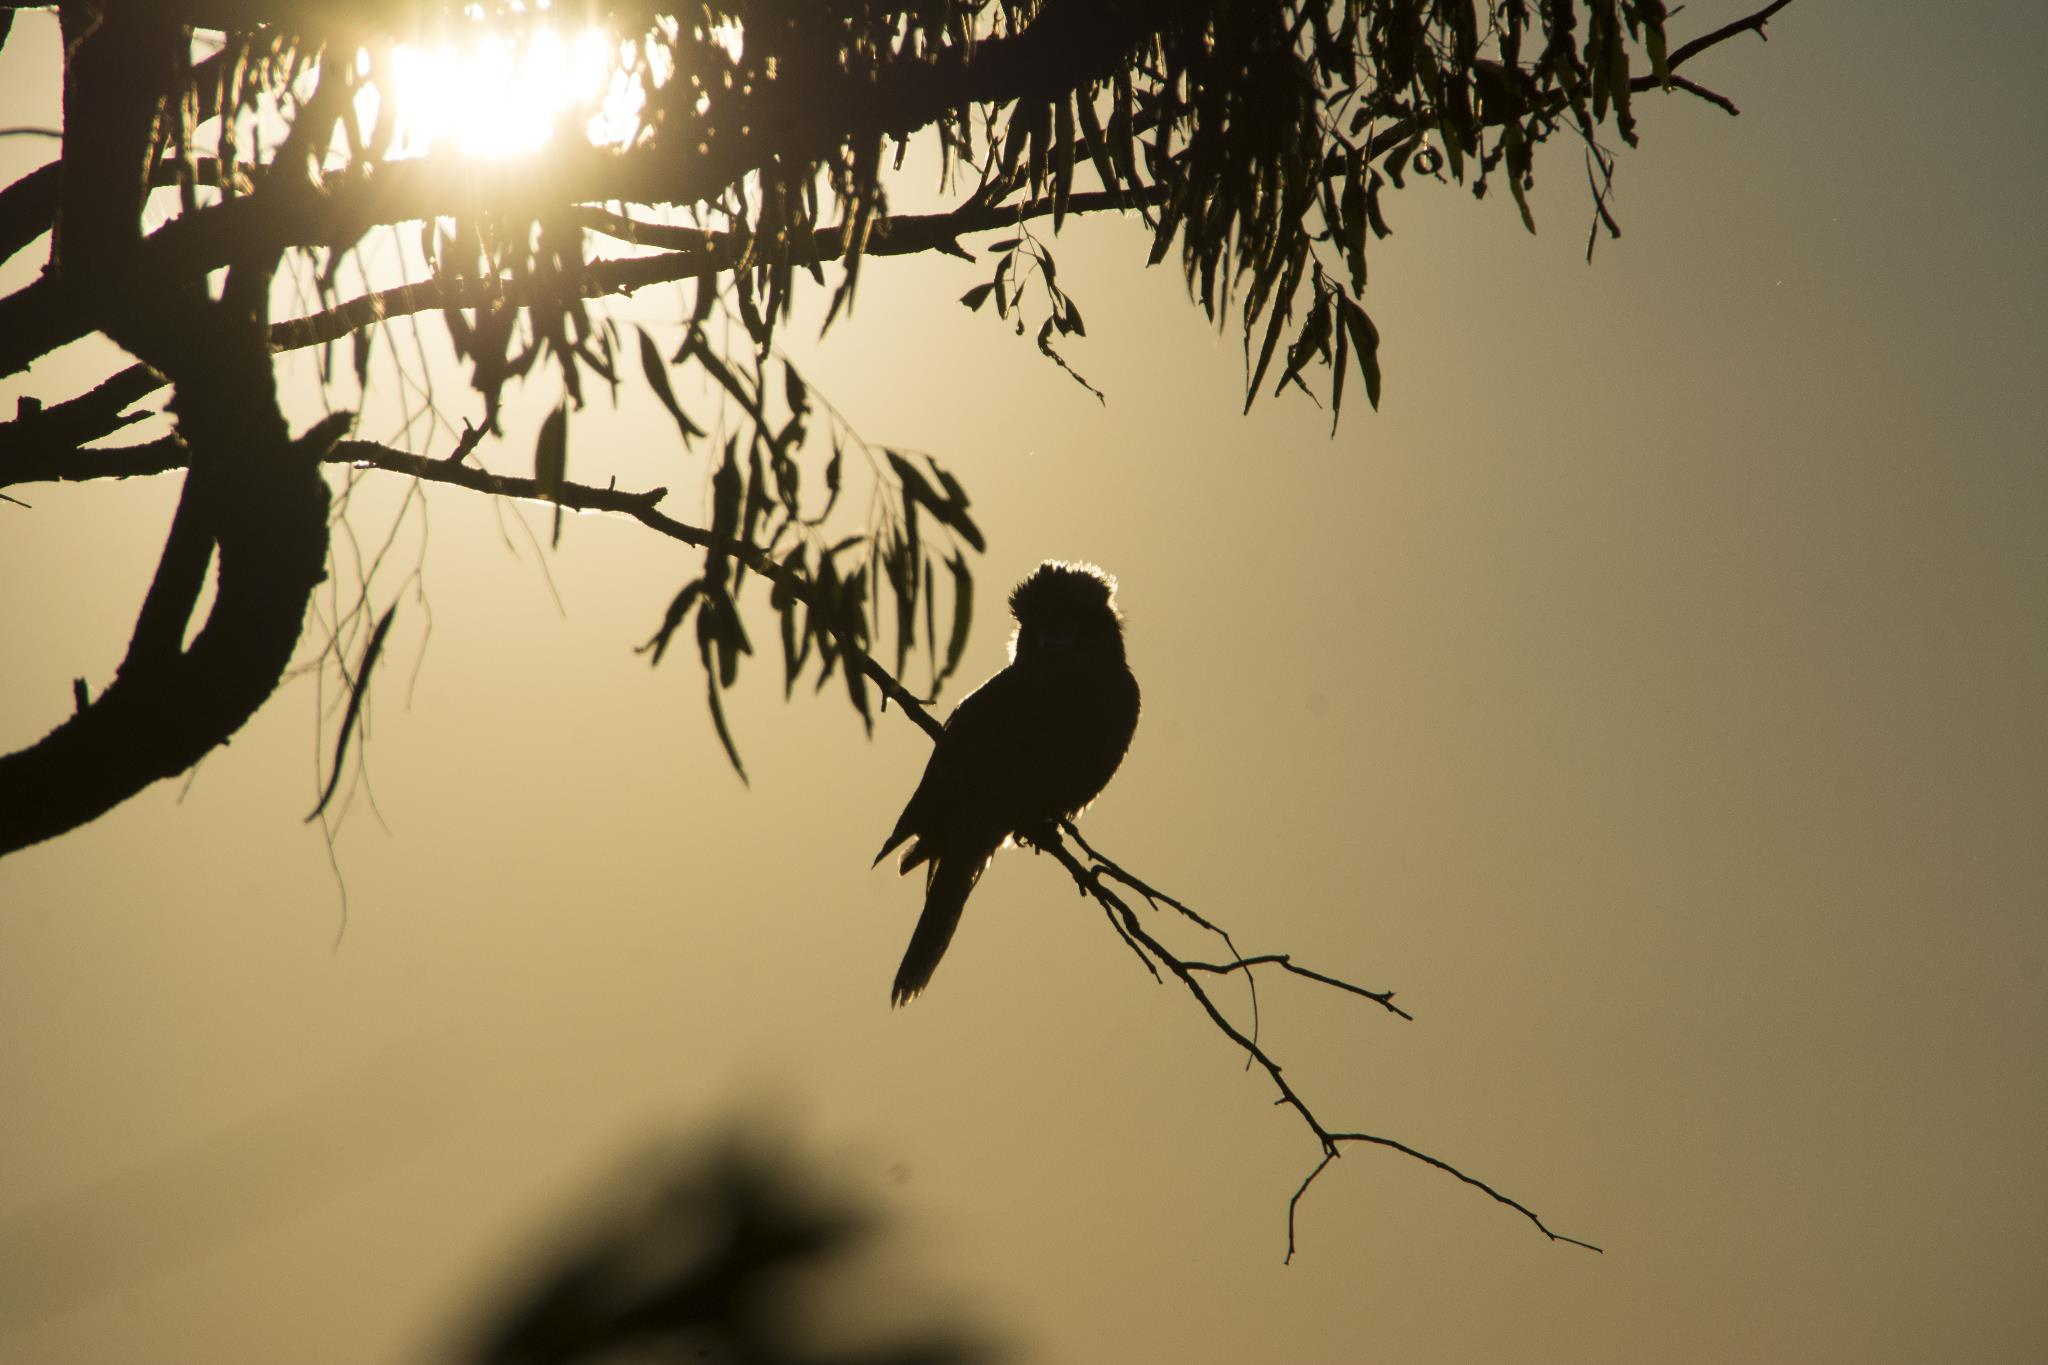 Kookaburra in the sun